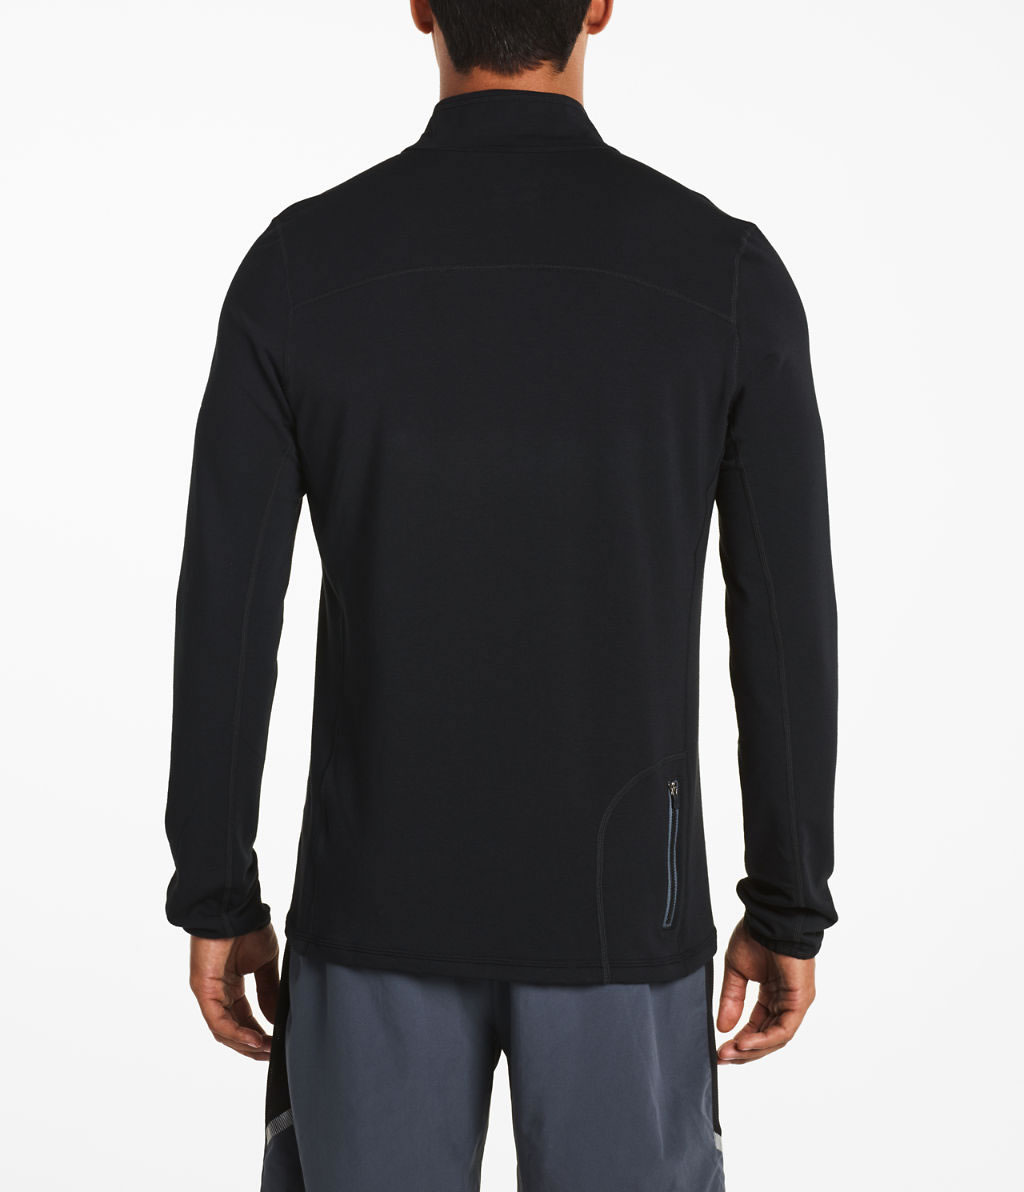 Saucony men's long sleeve running top